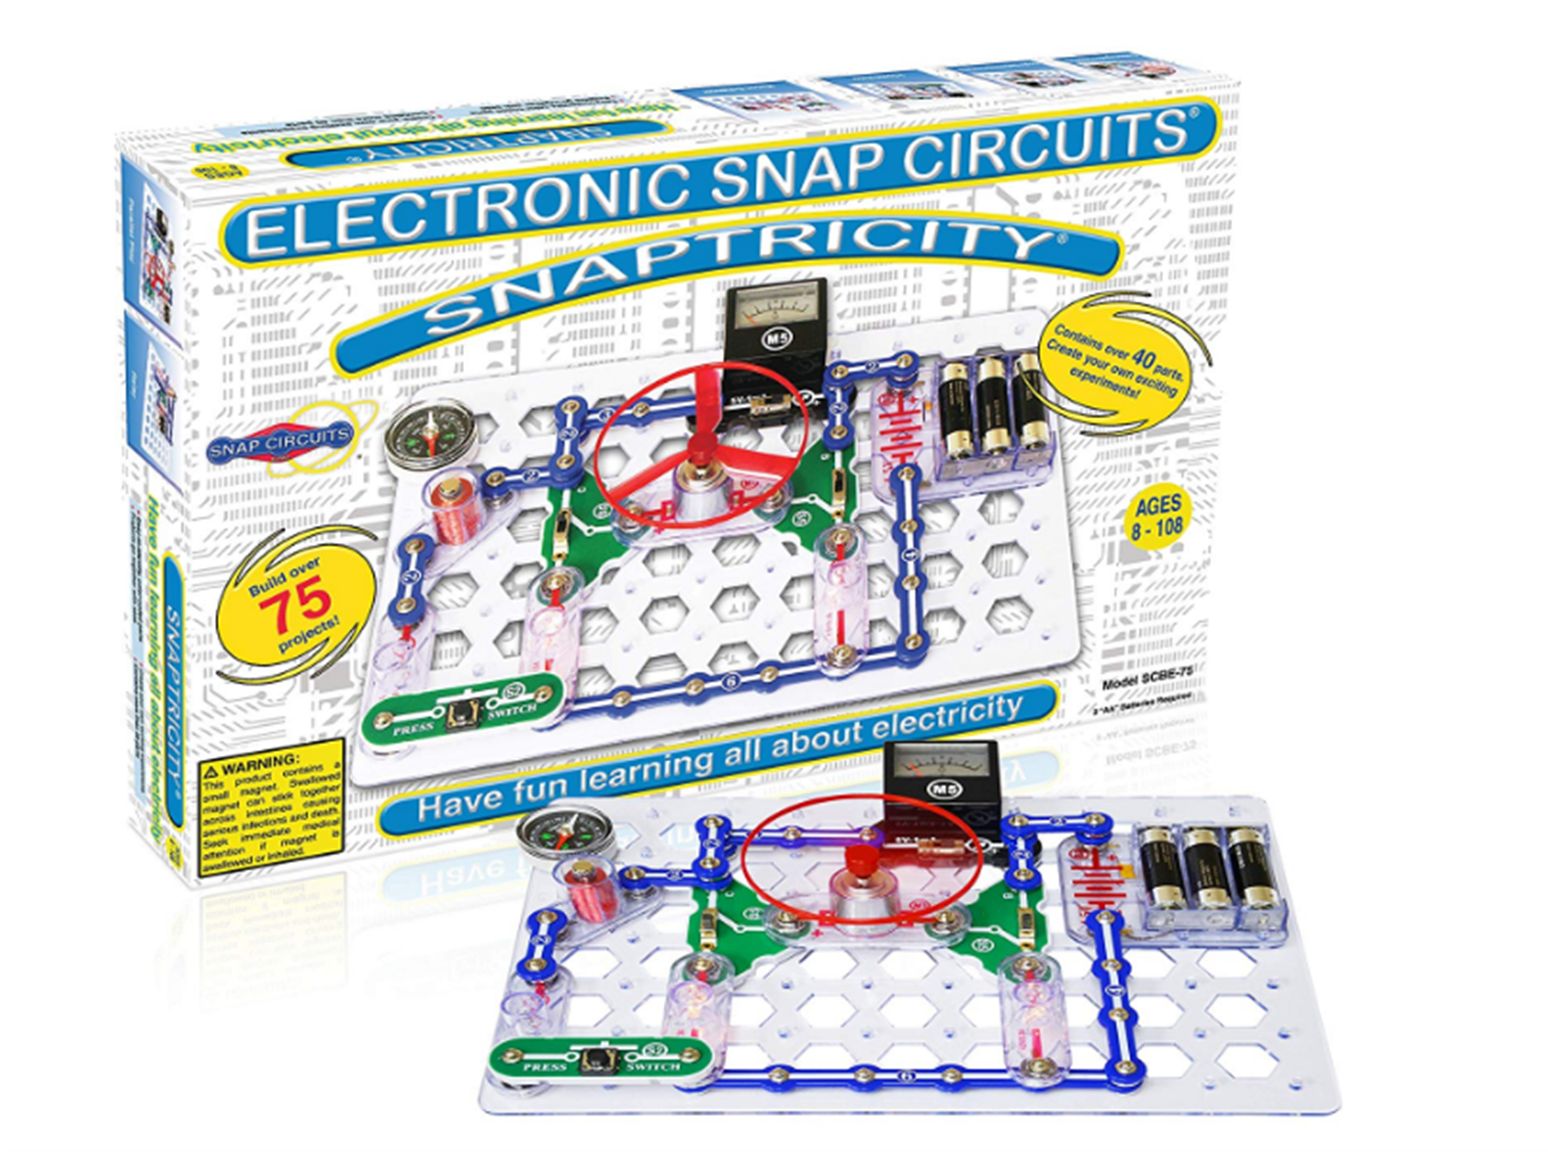 Amazon – Snap Circuits Snaptricity, Electronics Exploration Kit (Stem Building) Only $24.87, Reg $42.99!